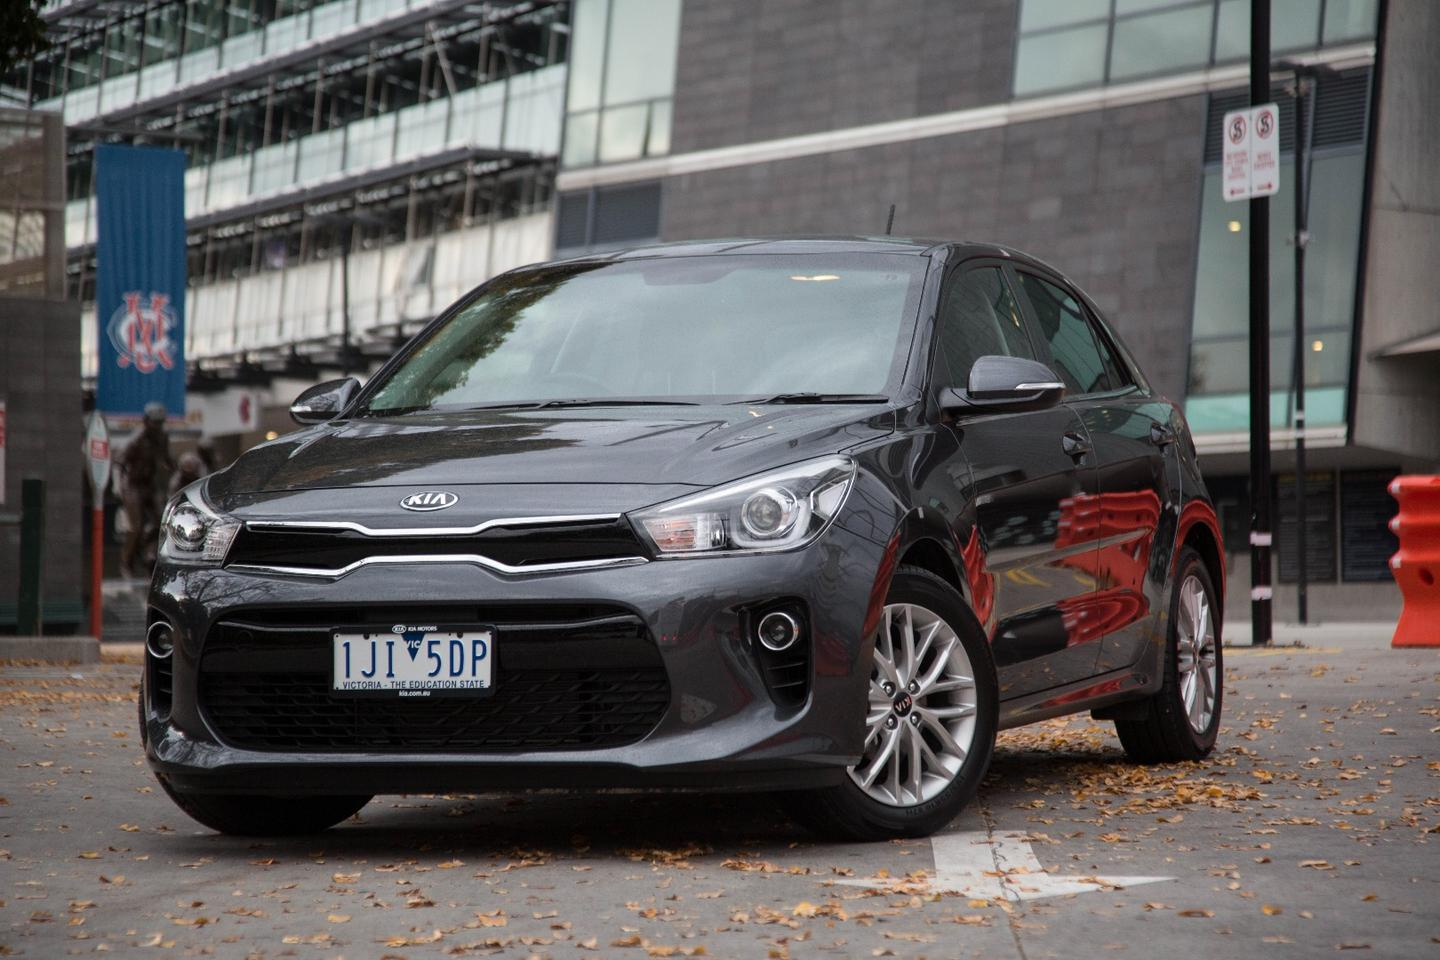 The new Kia Rio SLi is attractive, but it is let down by the powertrain under the hood